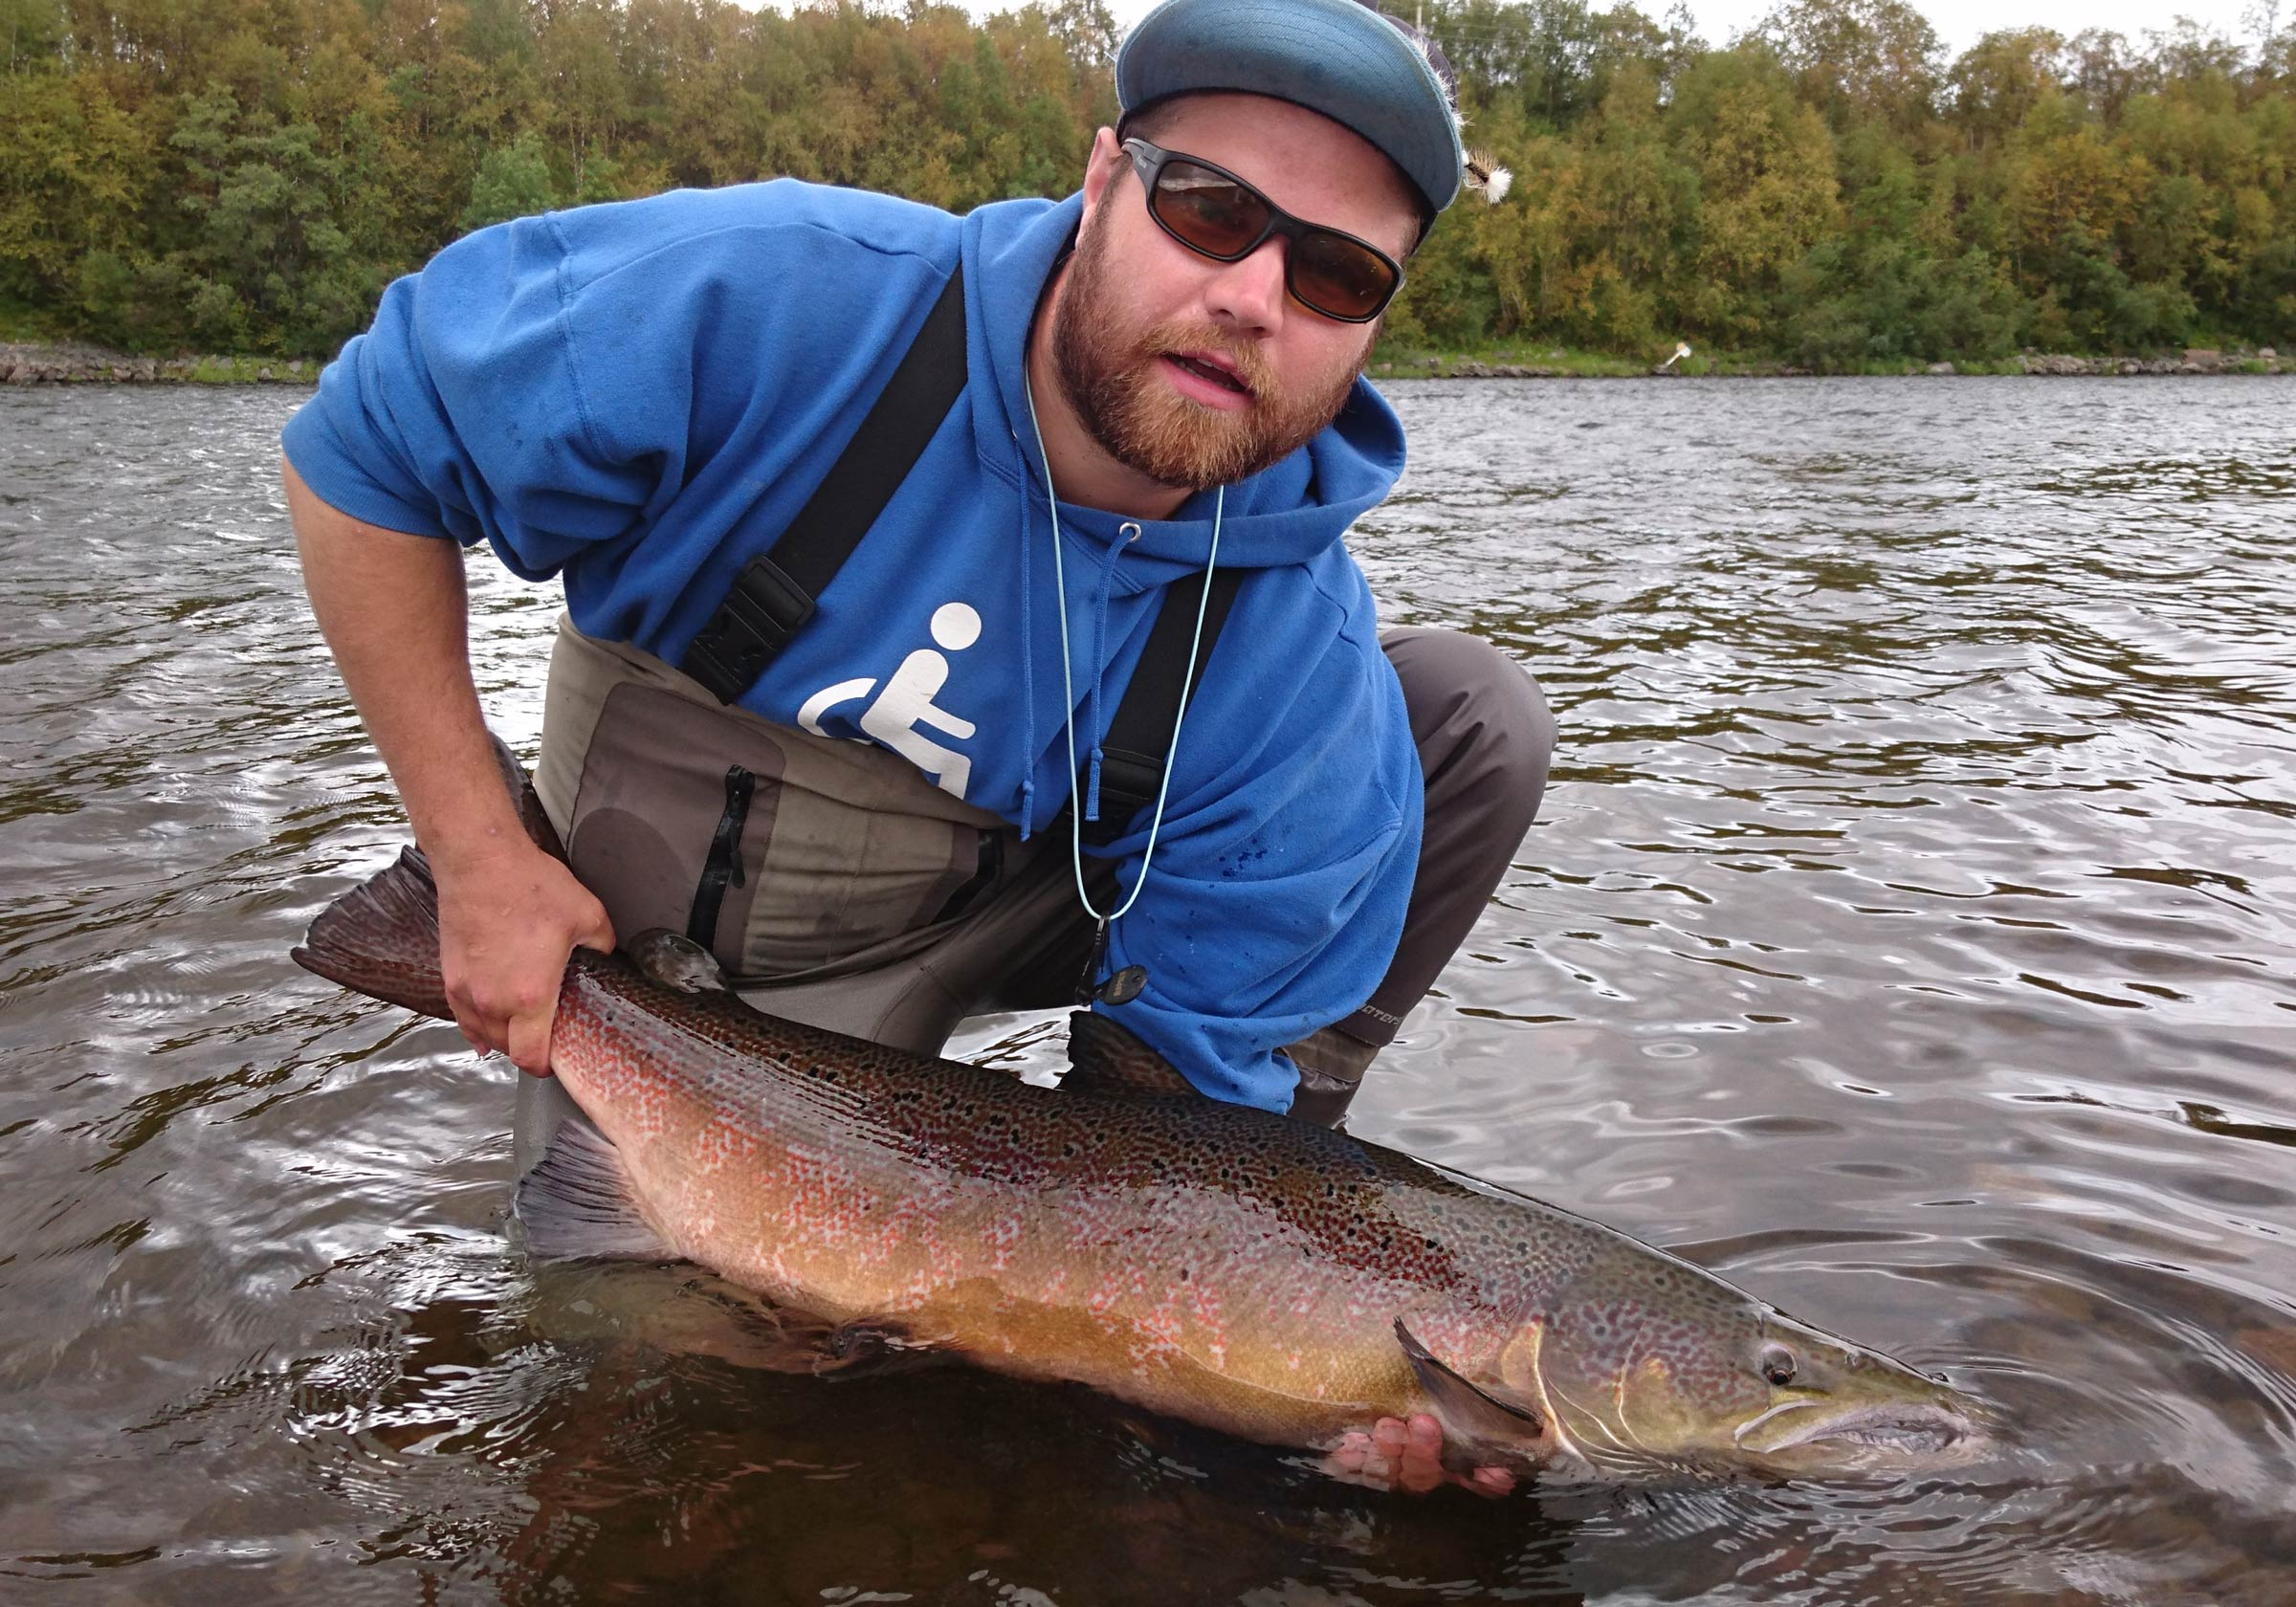 An angler with sunglasses and a cap squatting in running water, holding a nice-sized Salmon